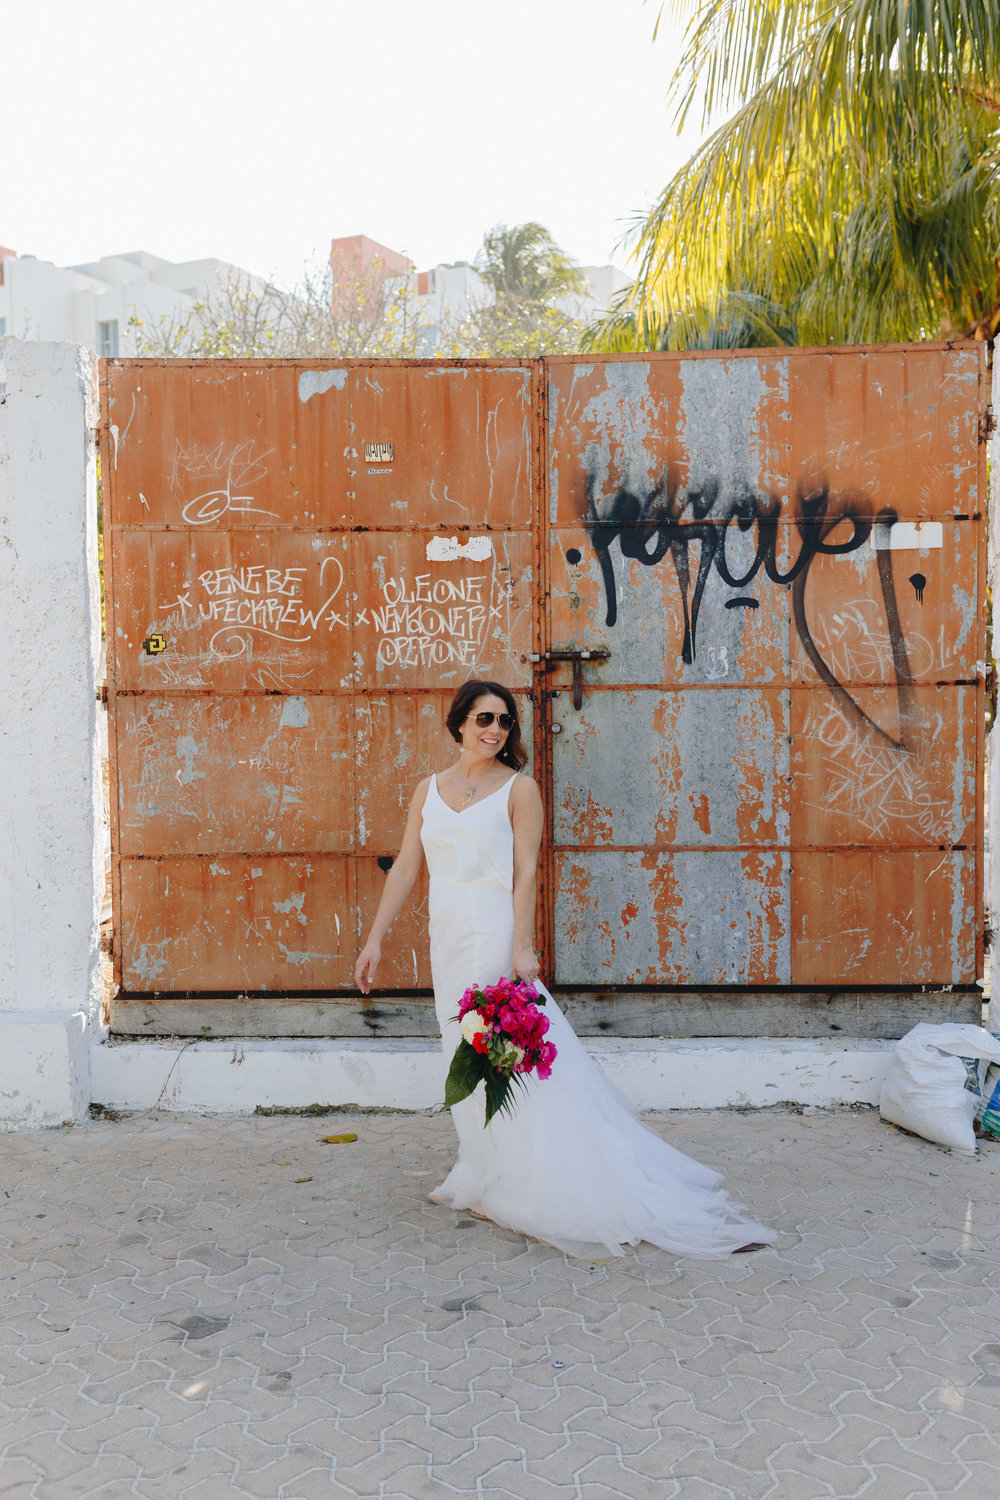 terwedo-destination-wedding-isla-mujeres-blog-144.jpg